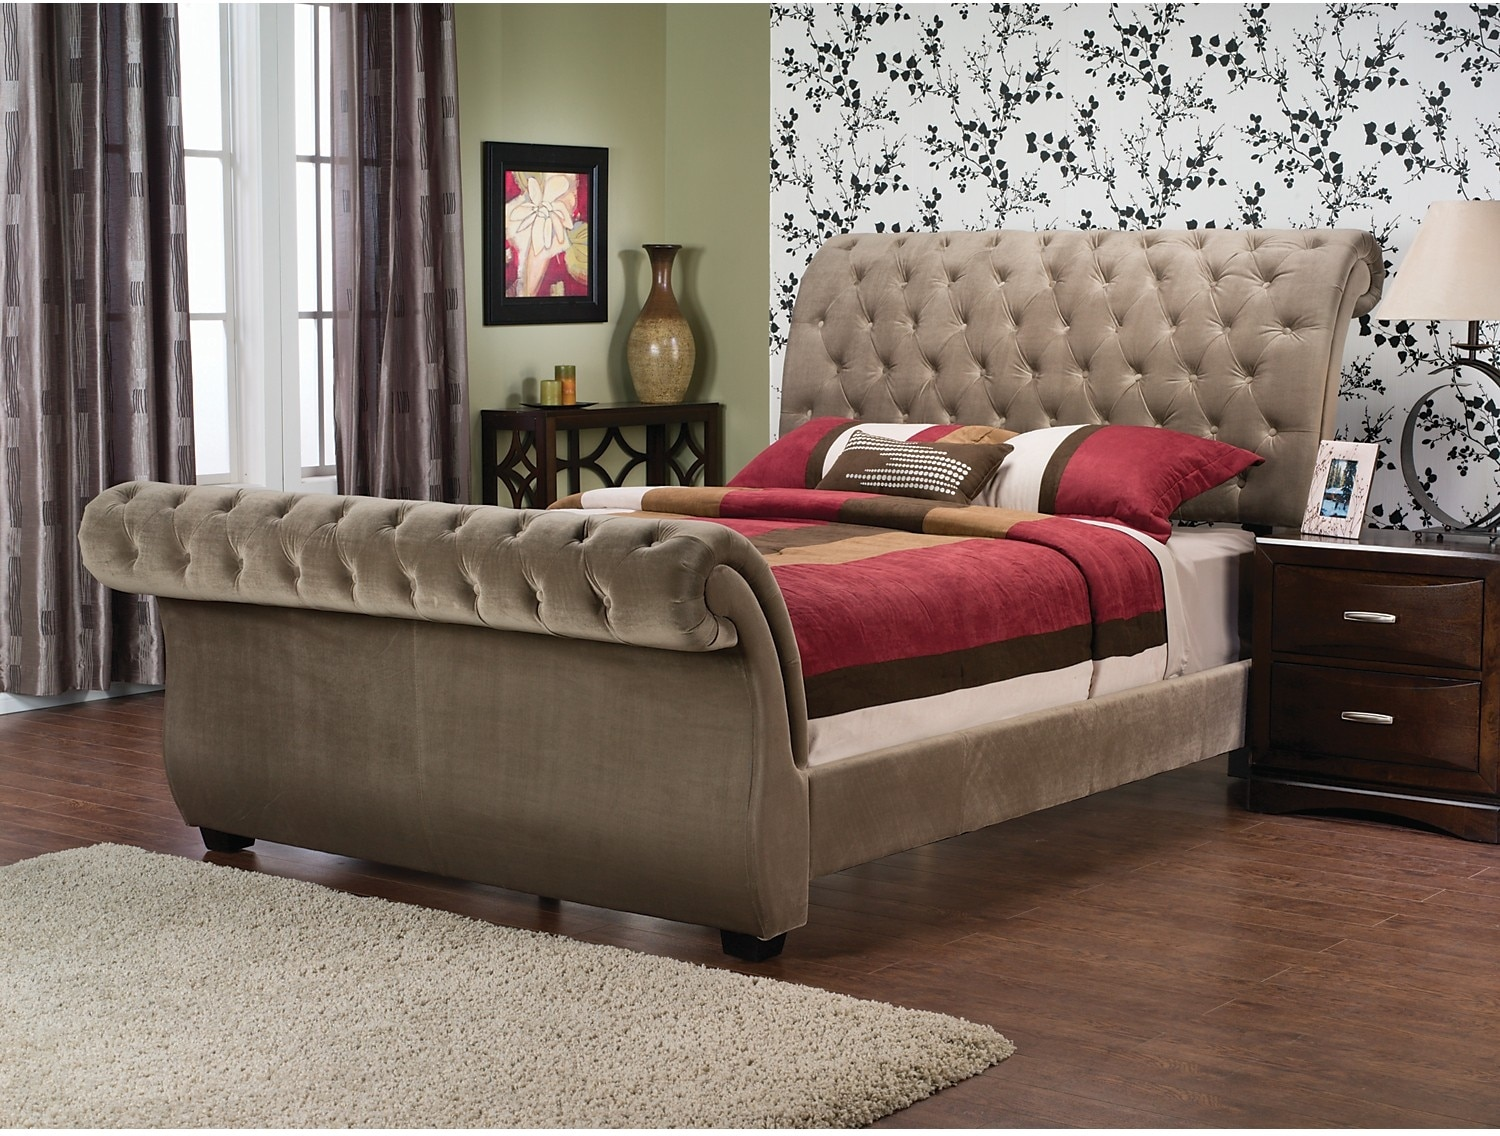 Westminster Polyester Velvet King Bed United Furniture